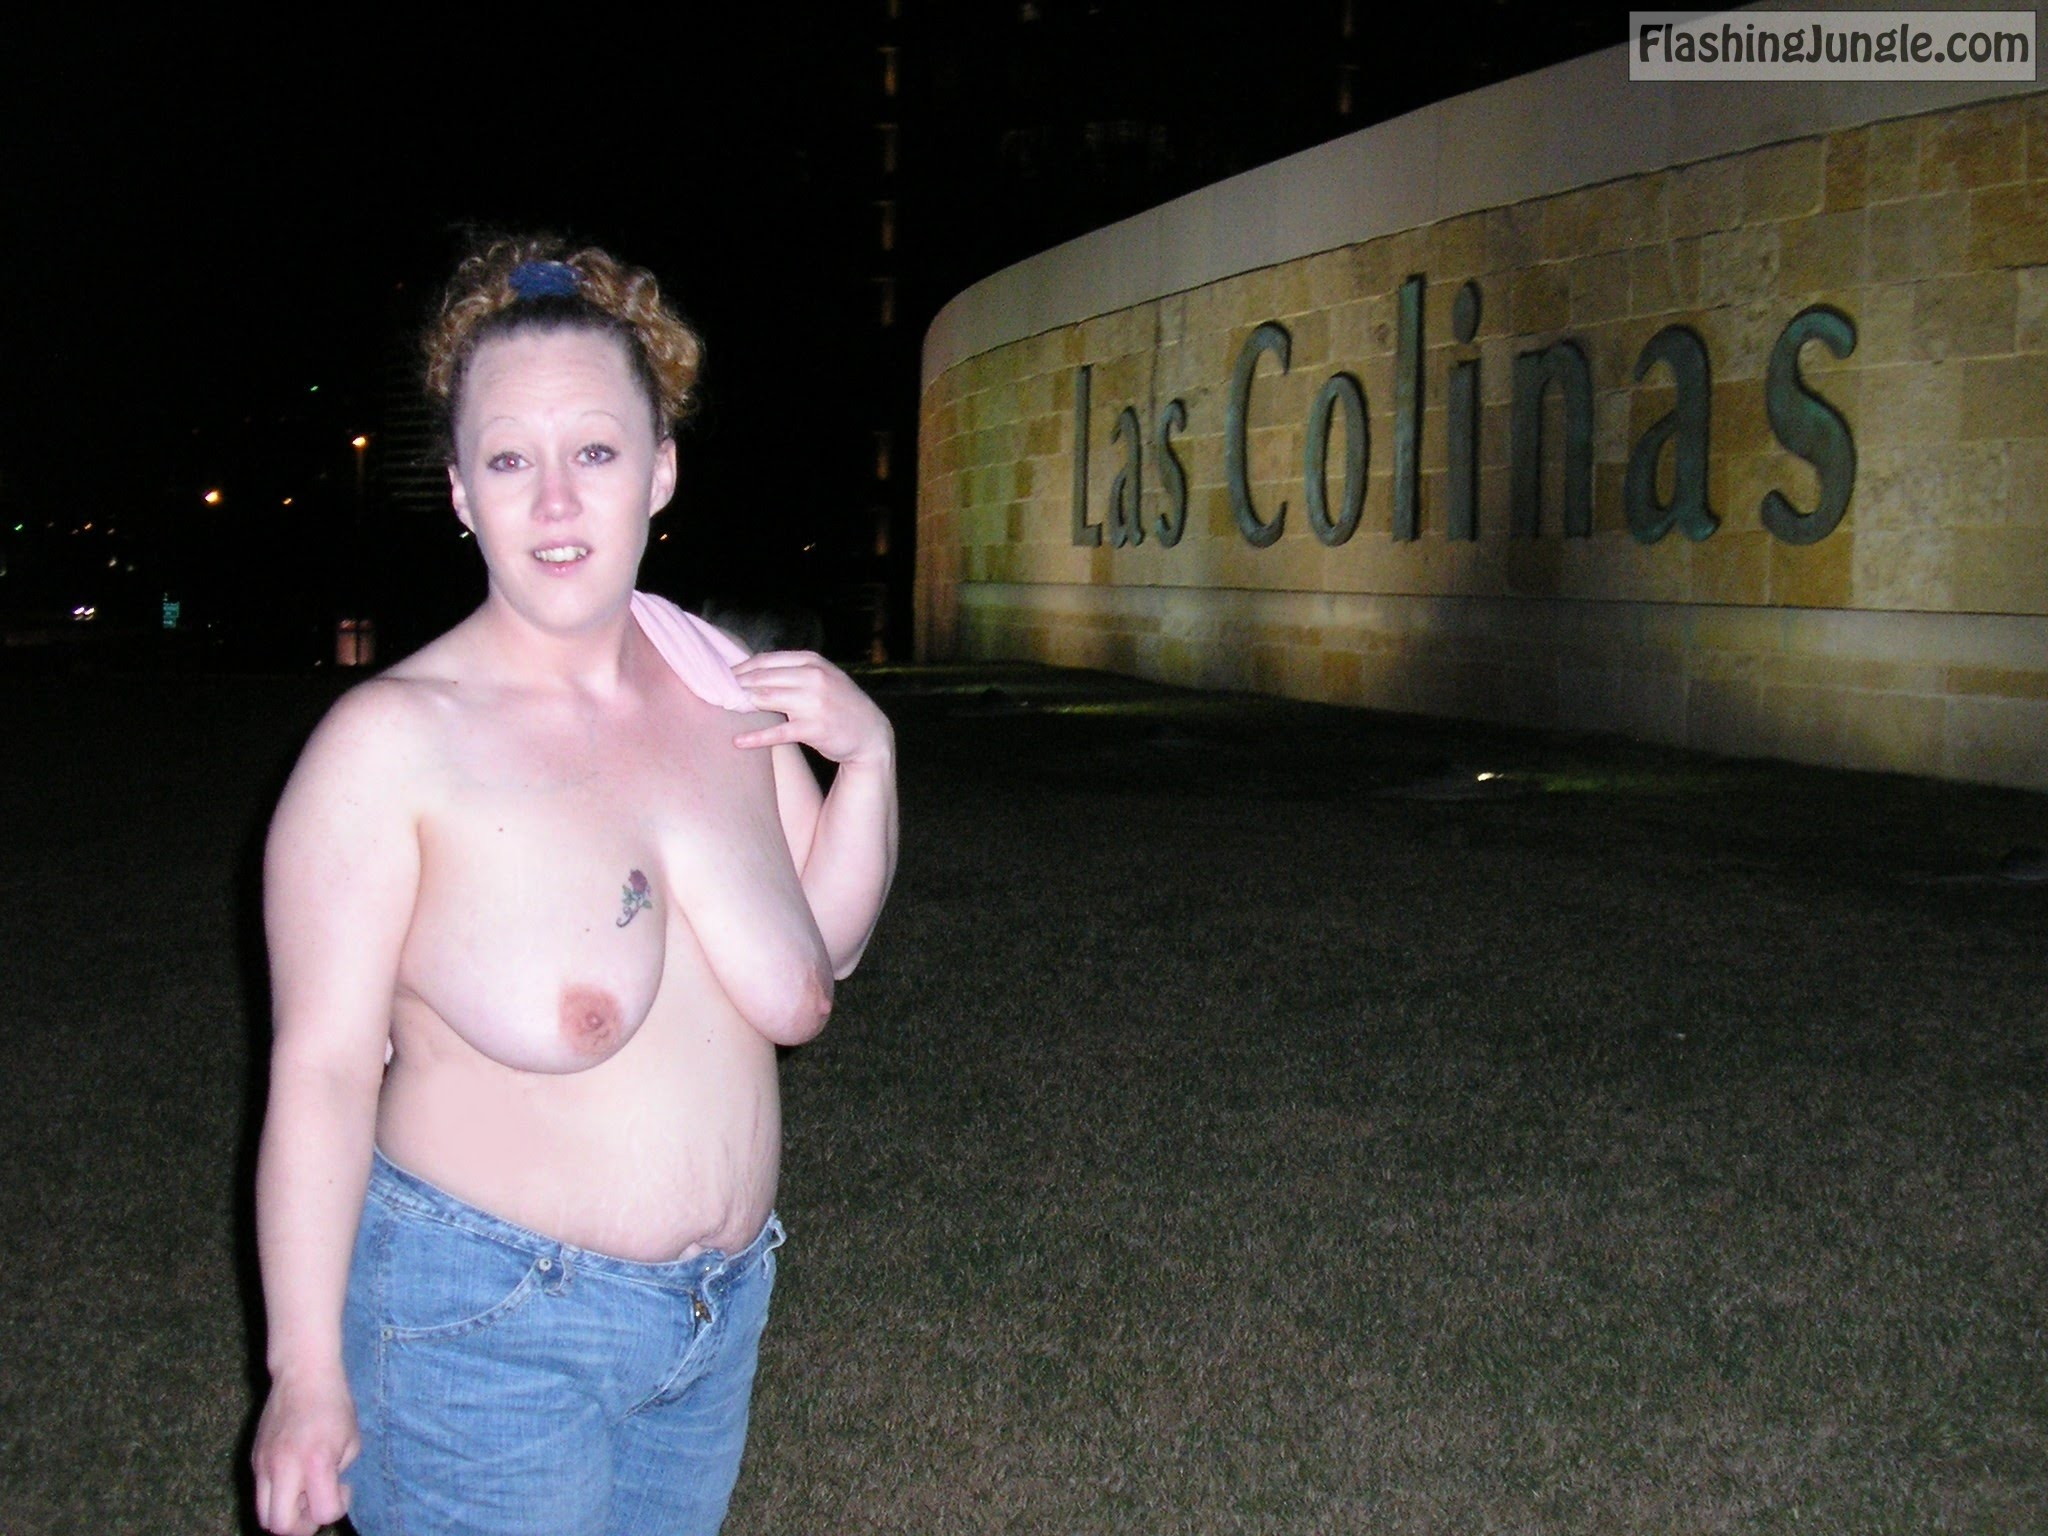 Topless Flashing by highway Las Colinas